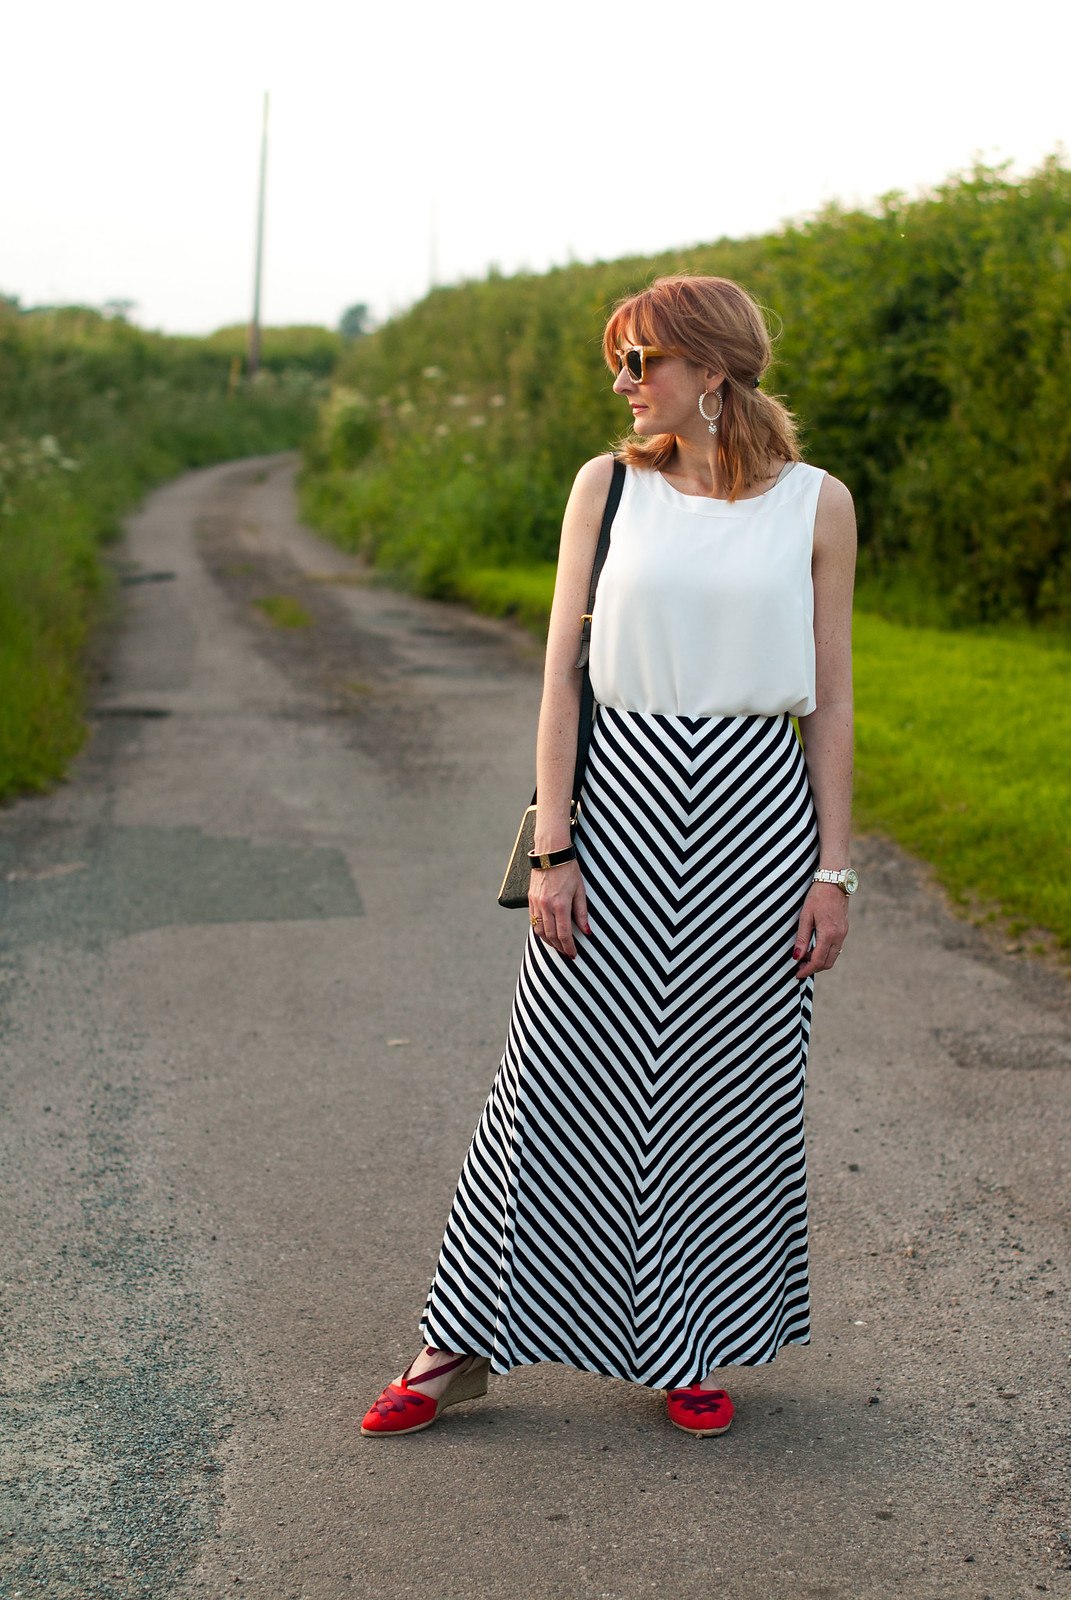 Black and white monochrome, summer style: Striped maxi skirt  loose white sleeveless blouse, red lace-up espadrilles  statement sunglasses and earrings | Not Dressed As Lamb, over 40 style